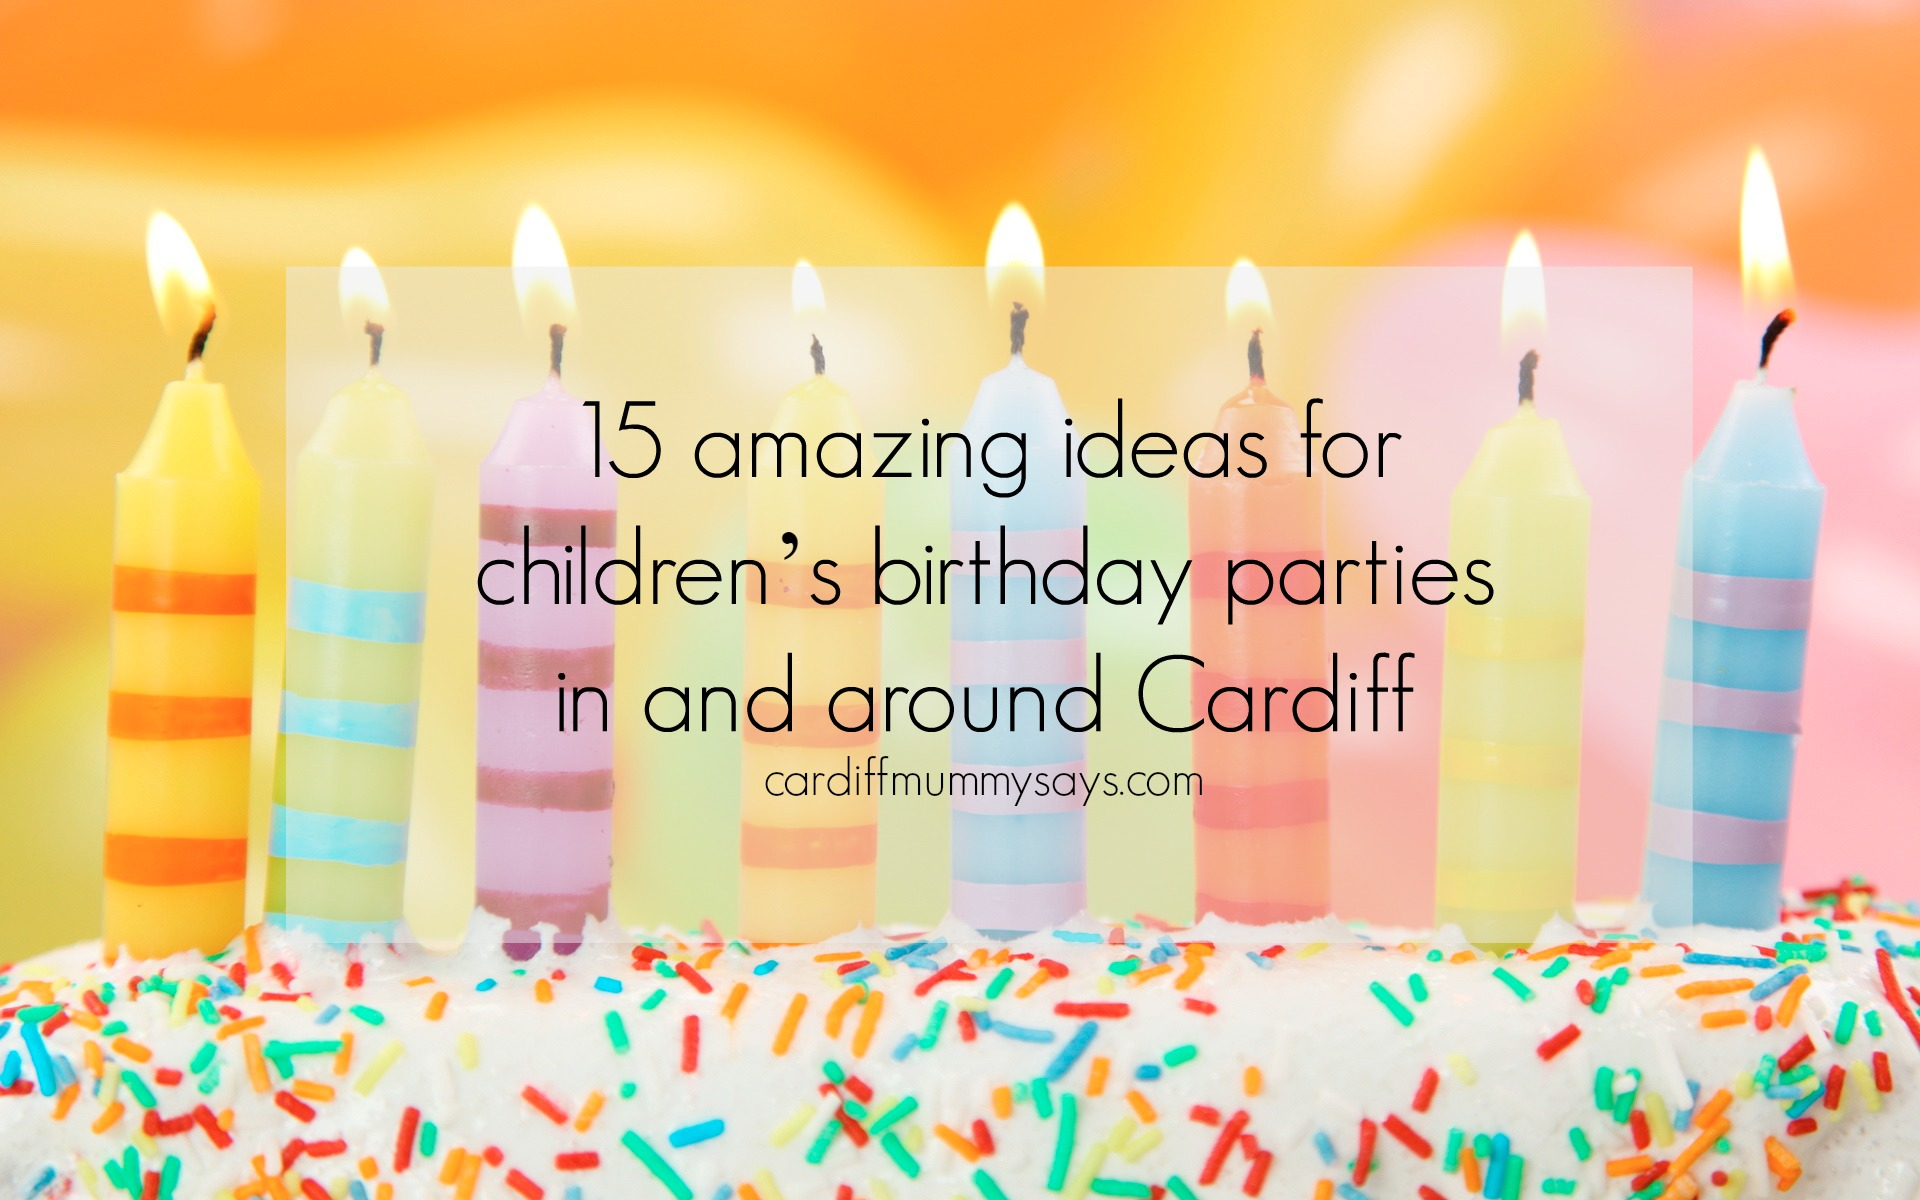 Birthday party image with text